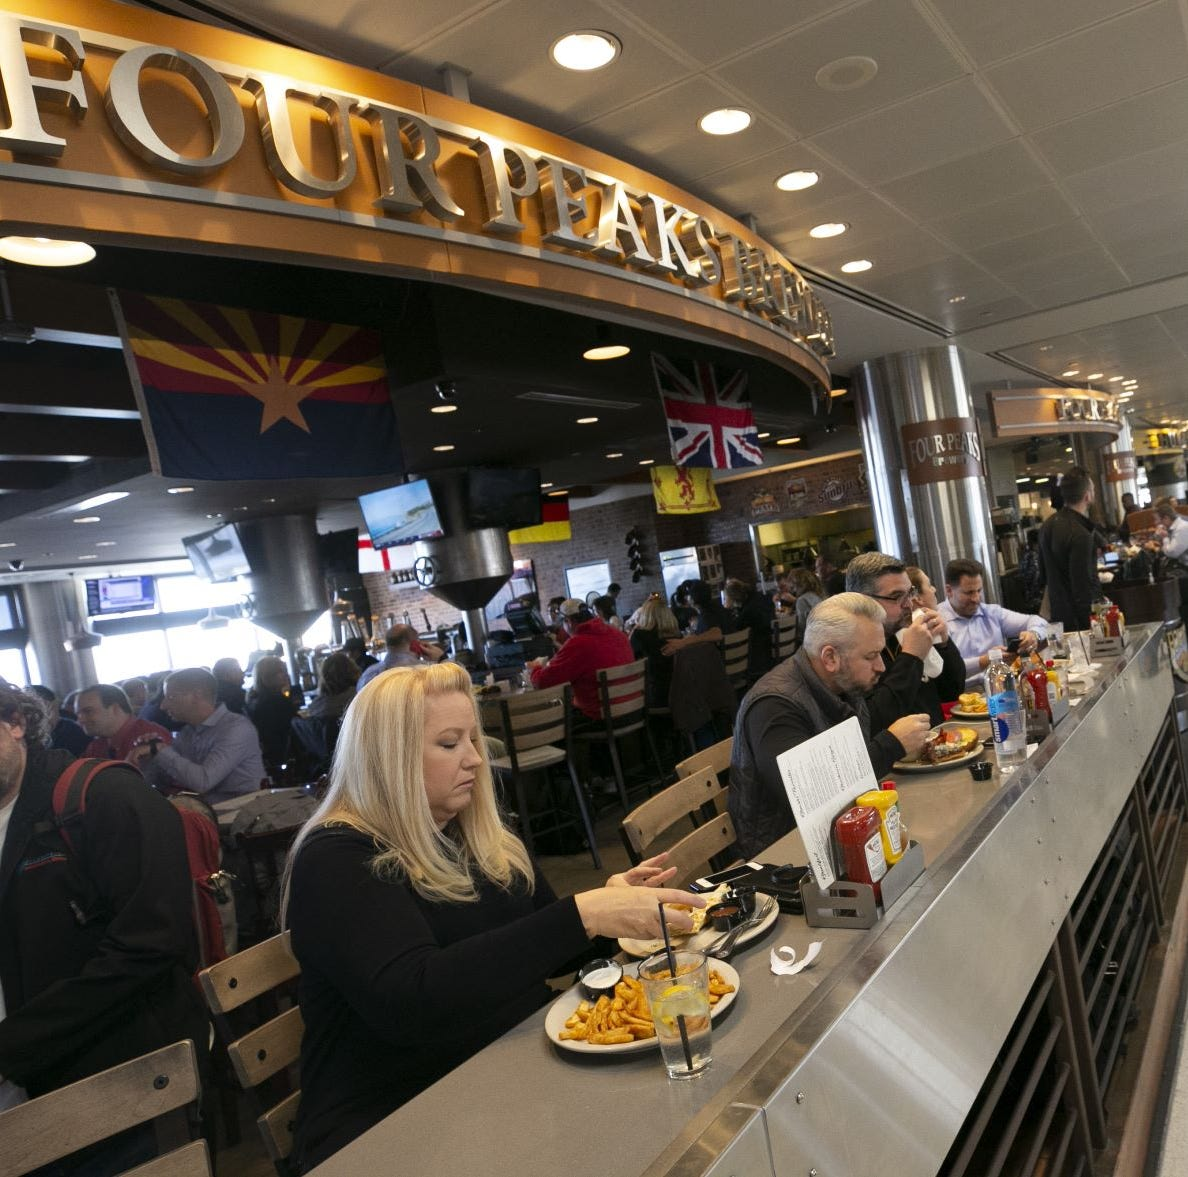 Phoenix Sky Harbor Airport restaurants want to raise prices